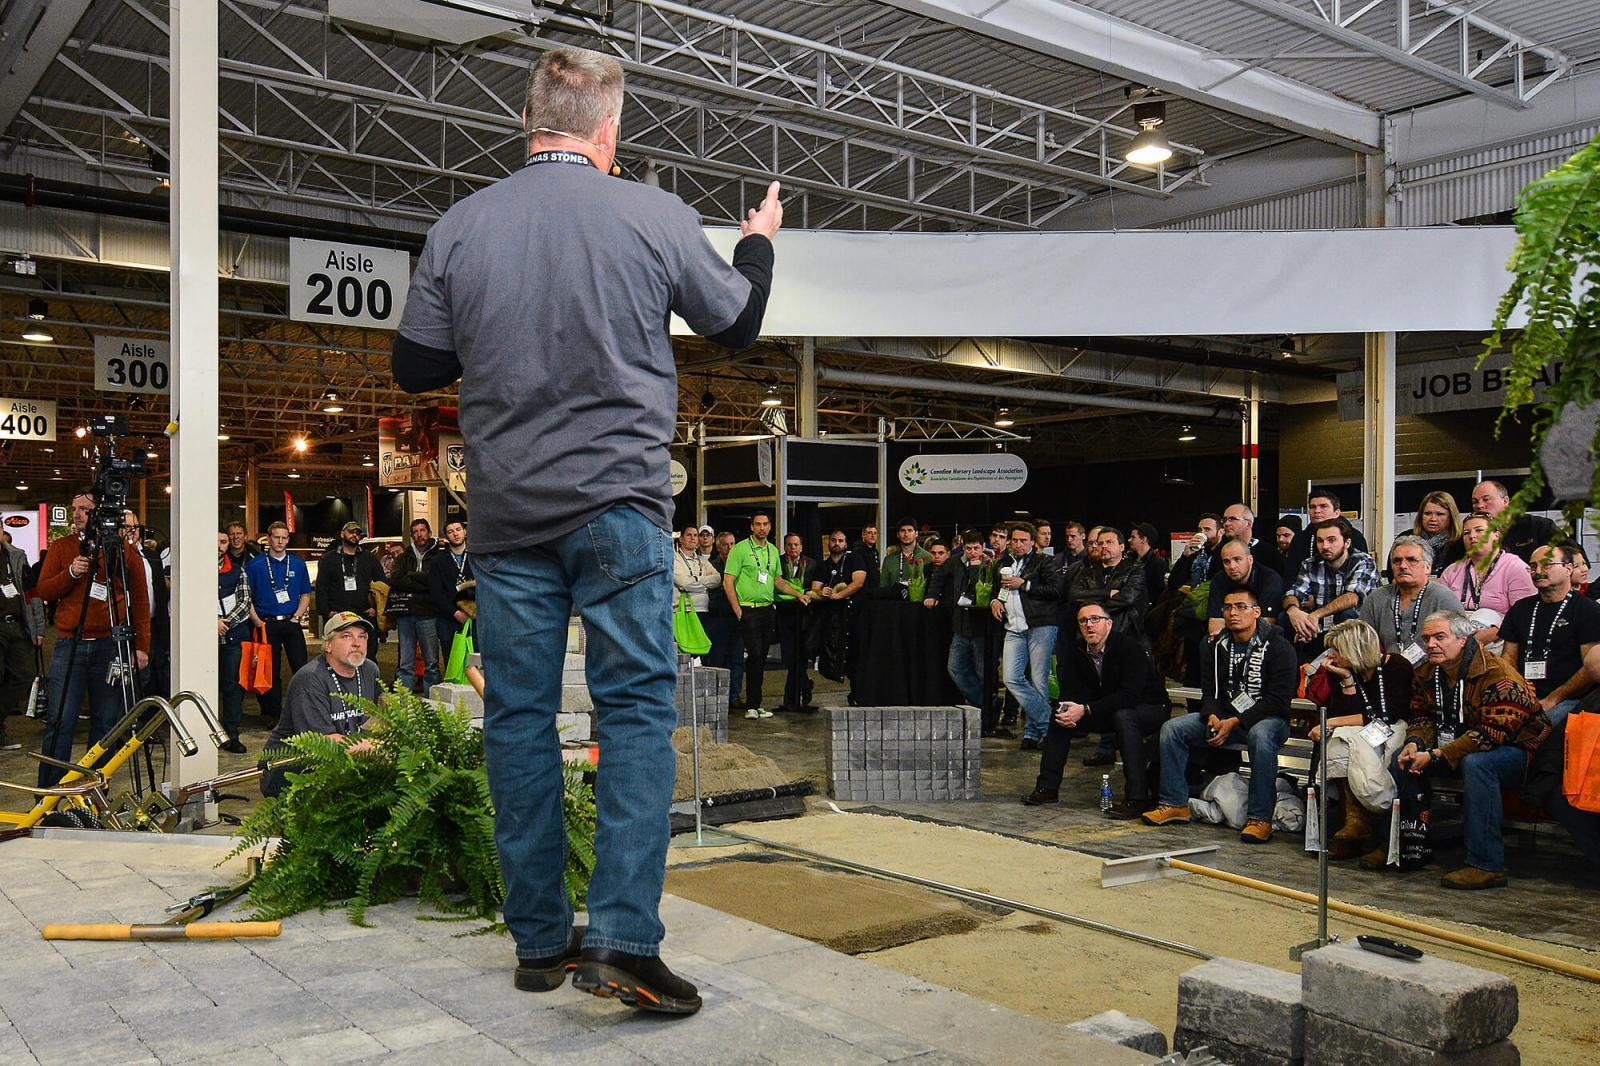 A new feature at Congress 2016, HardscapeLIVE, drew large crowds to an area of the show floor.